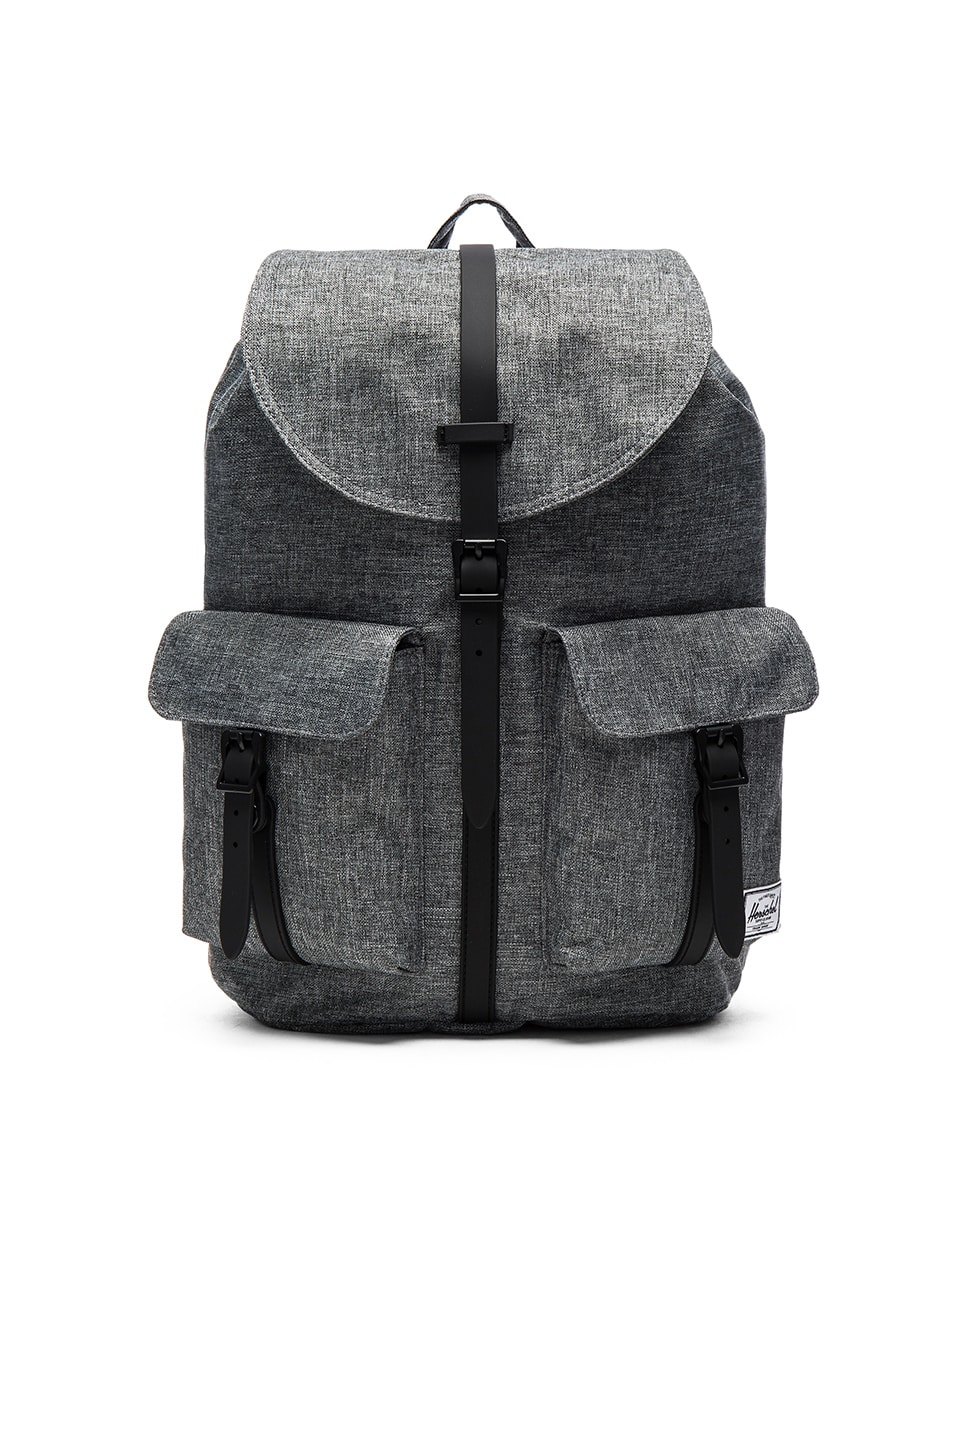 Herschel Supply Co. Dawson in Raven Crosshatch & Black Rubber